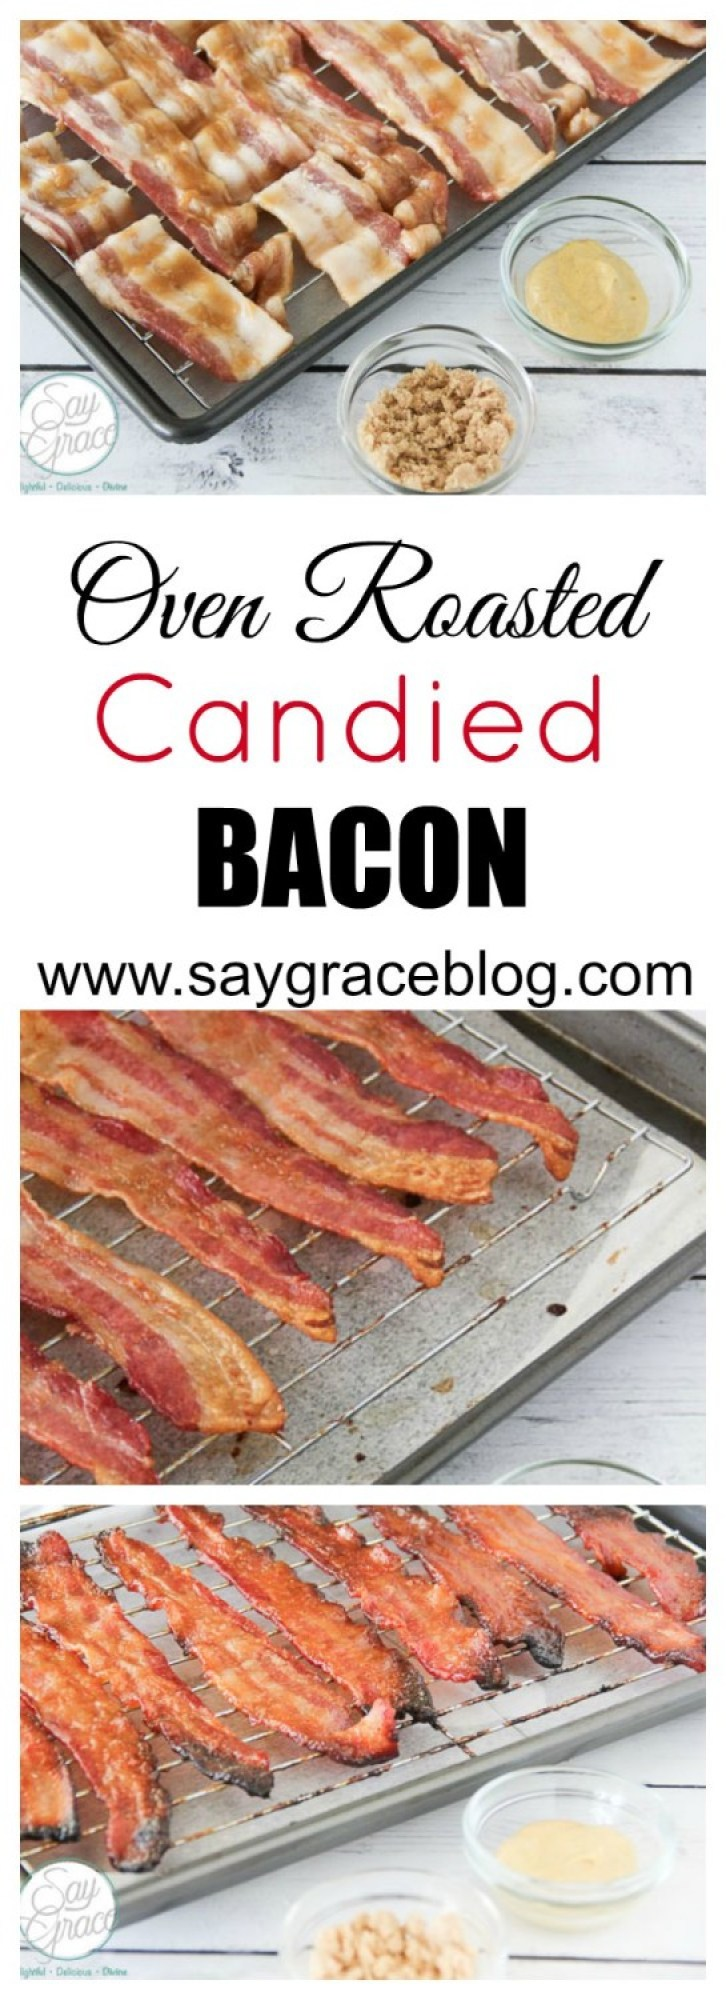 Oven Roasted Candied Bacon